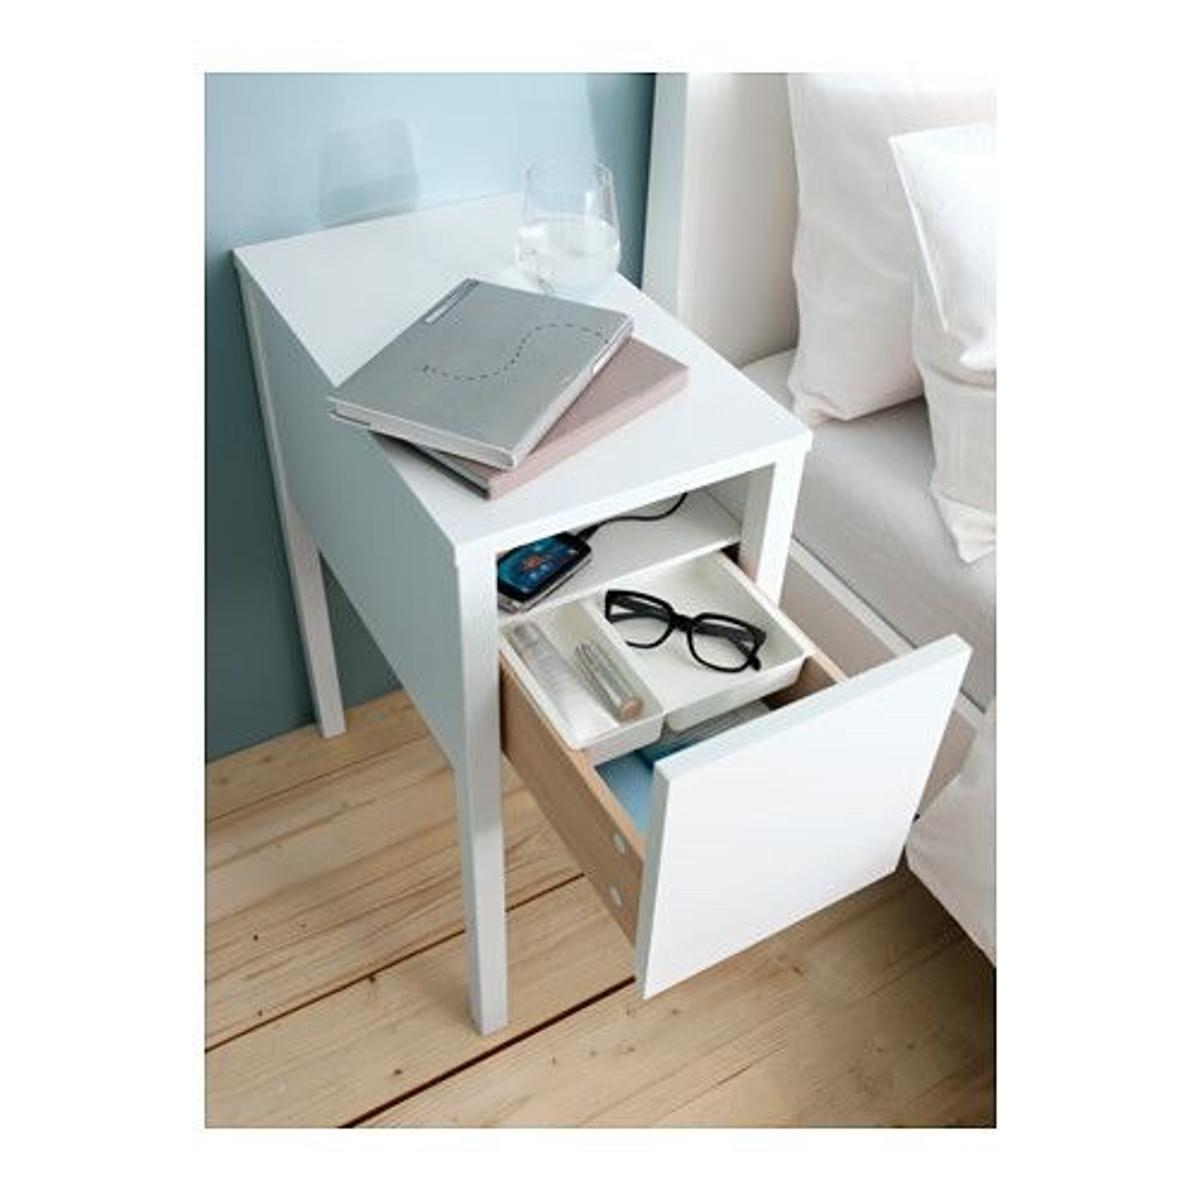 Ikea Nordli Nightstand Second Hand In Se14 London For 15 00 For Sale Shpock